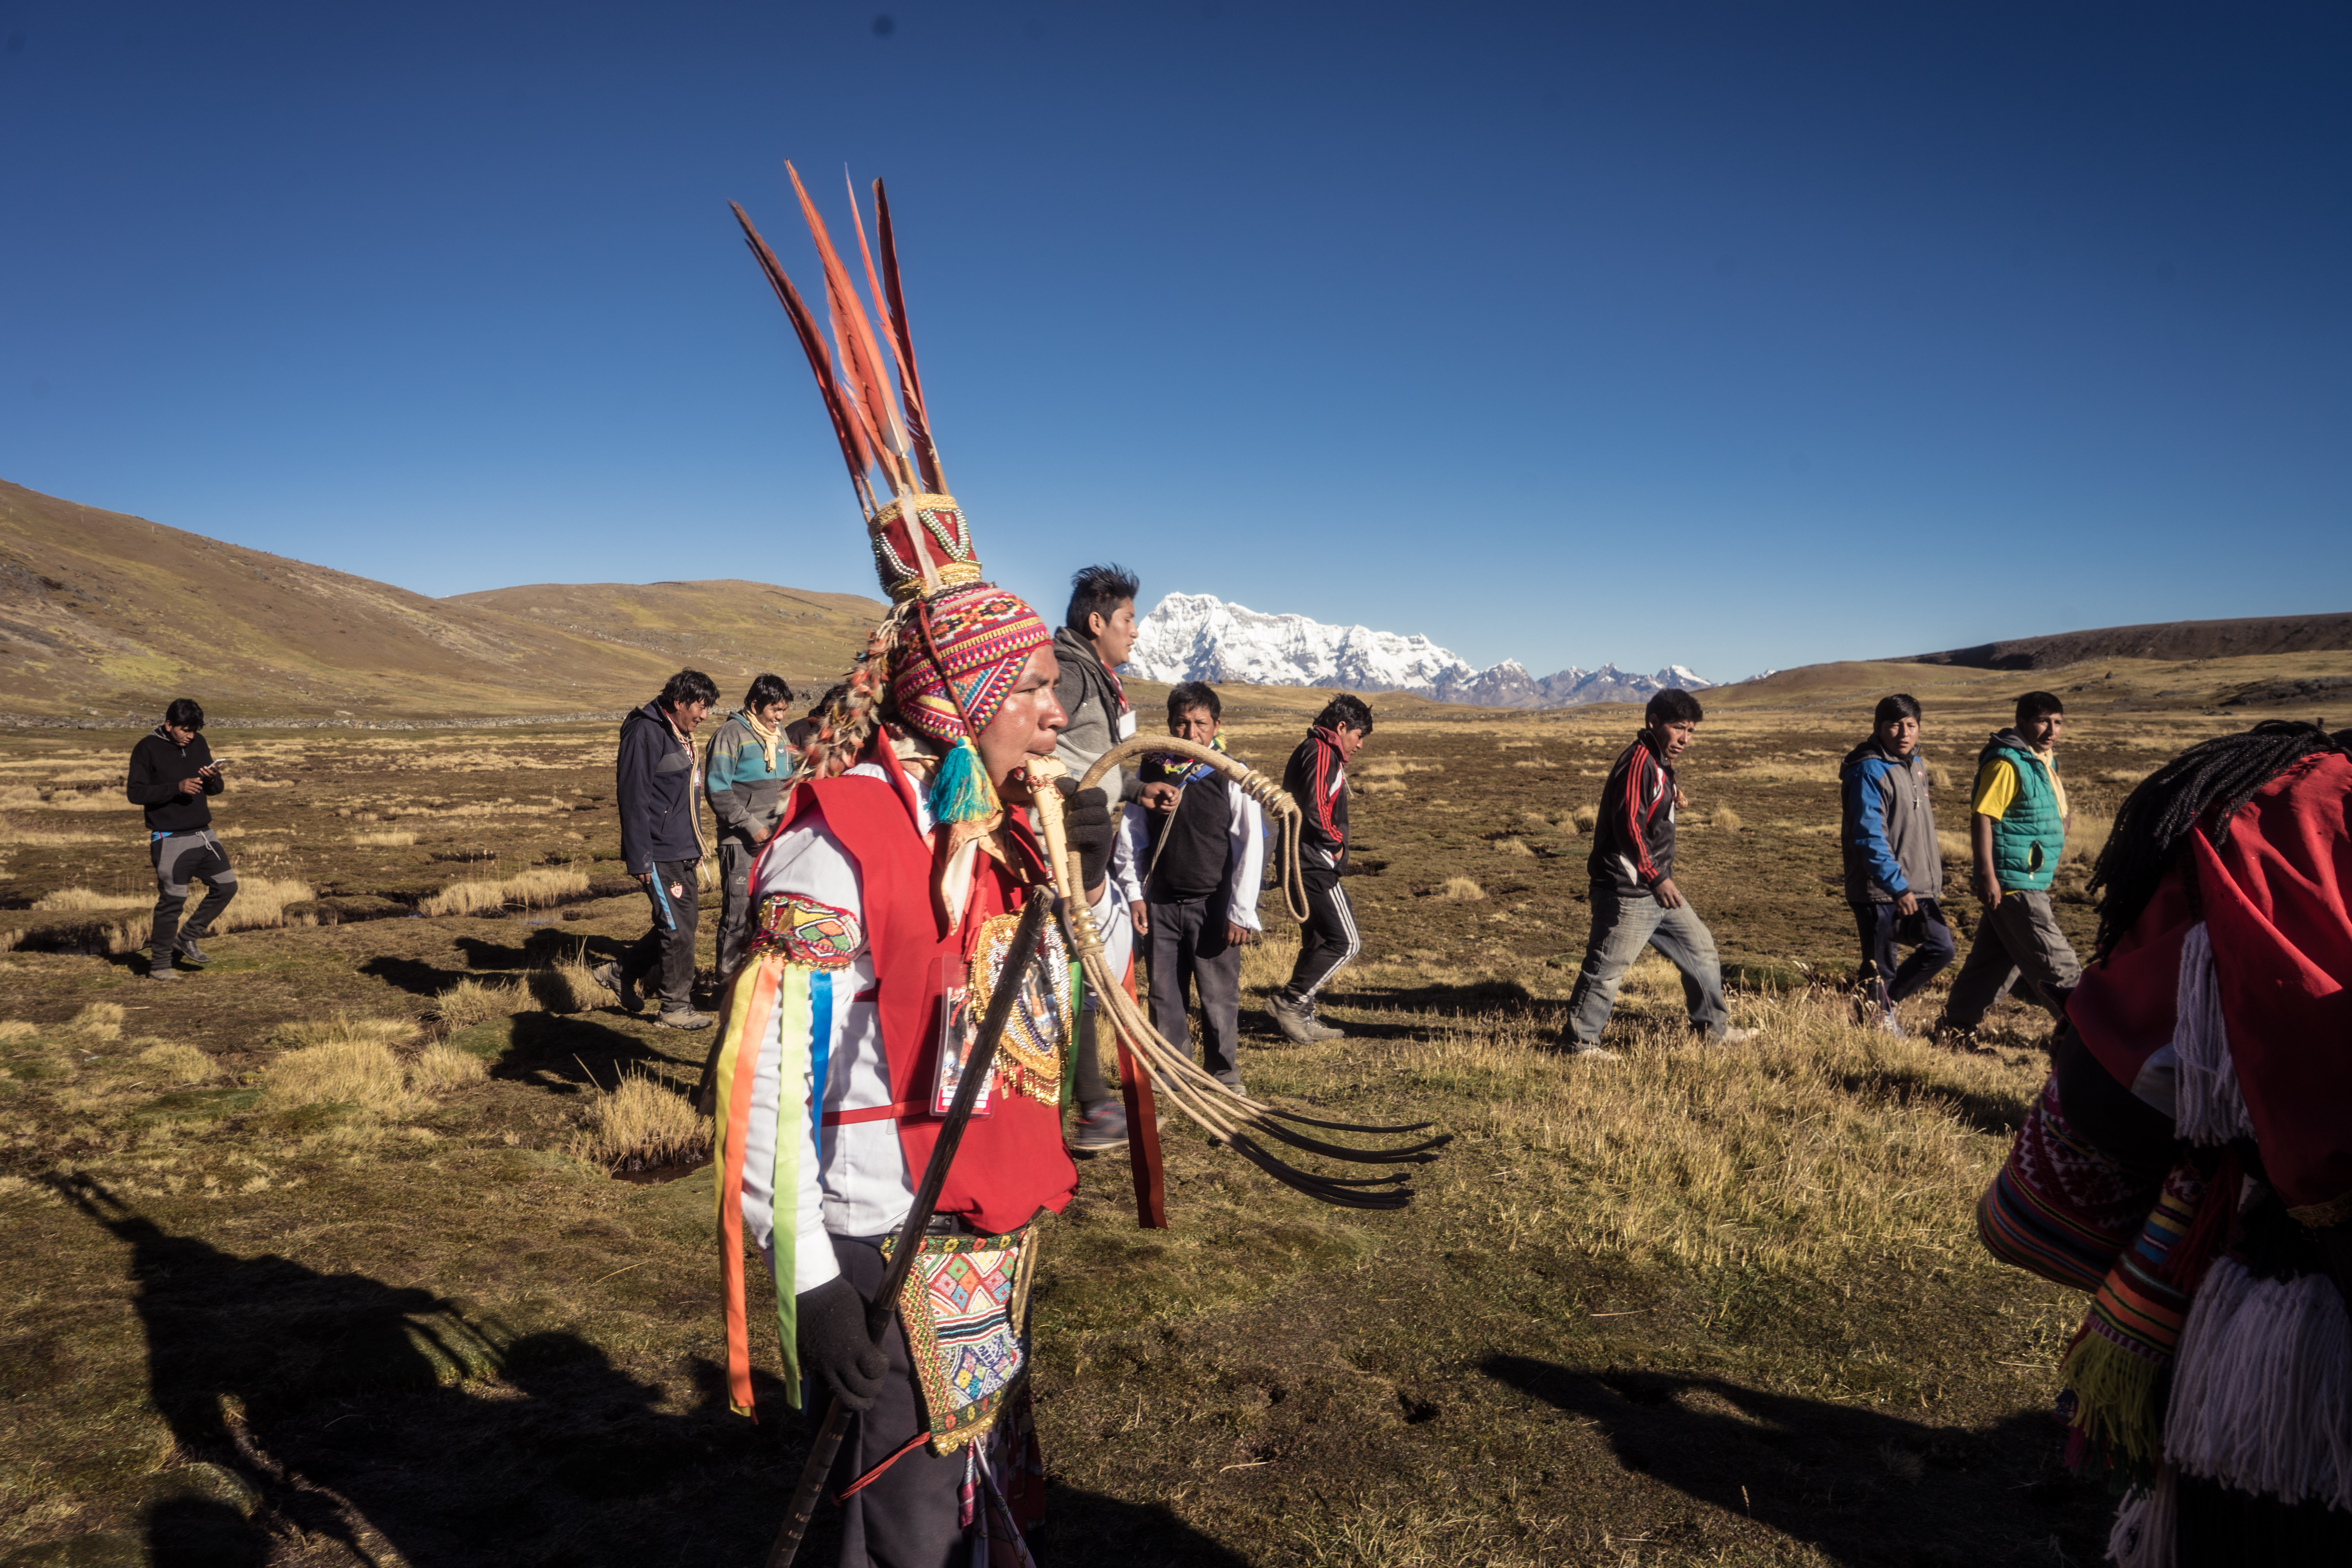 the Arariwa, pucapacuri or wayrichunchu guiding, dancing and preparing the procession route (Photo by Walter Coraza Morveli)